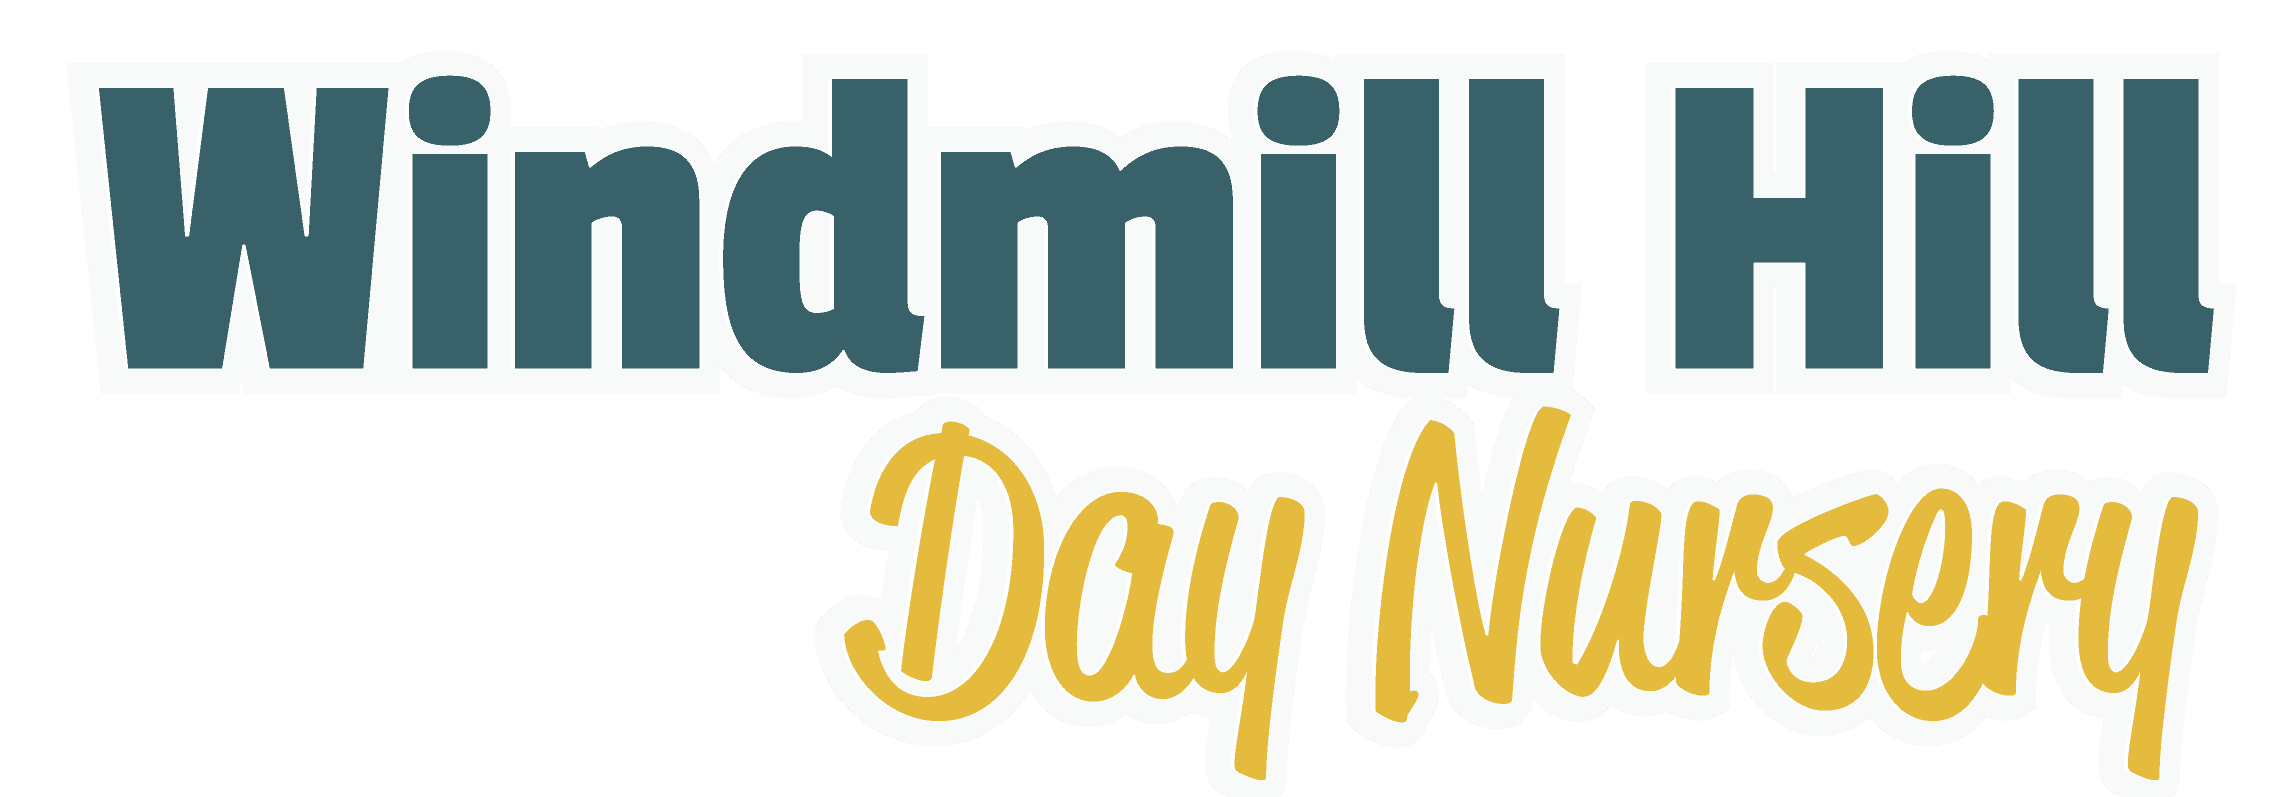 Windmill Hill Day Nursery logo